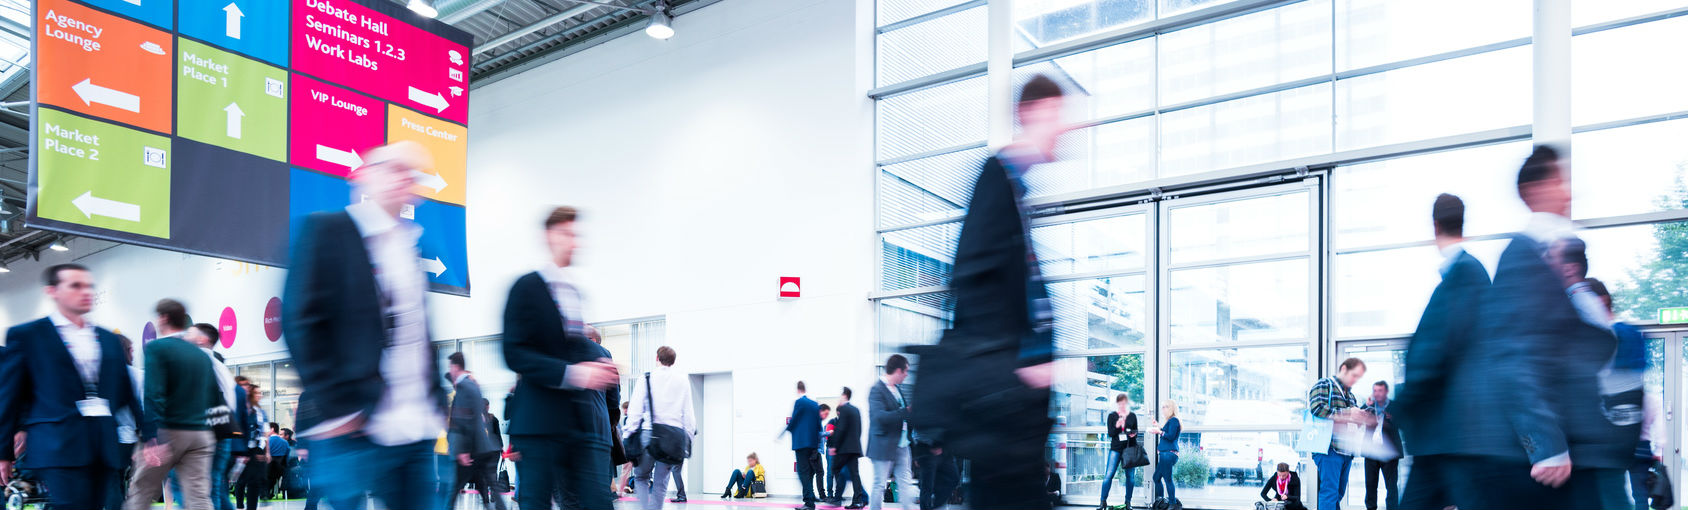 Are you exhibiting at a trade show, conference or event?